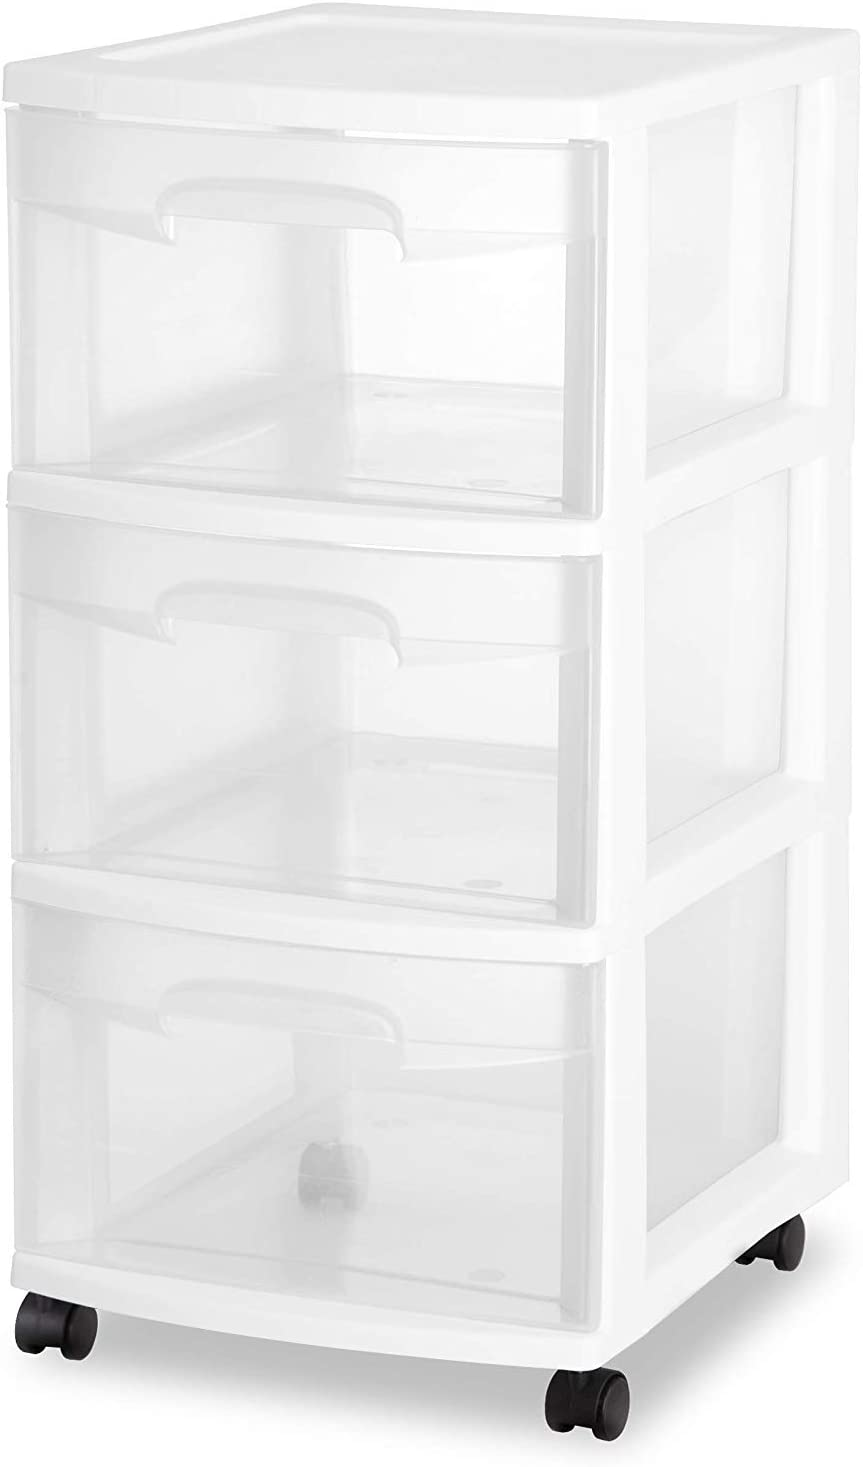 Sterilite 28308001K 3 Drawer Rolling Caster Wheel Home Organizer Storage Cart with Durable Plastic Frame, Clear Drawers, White (4 Pack)